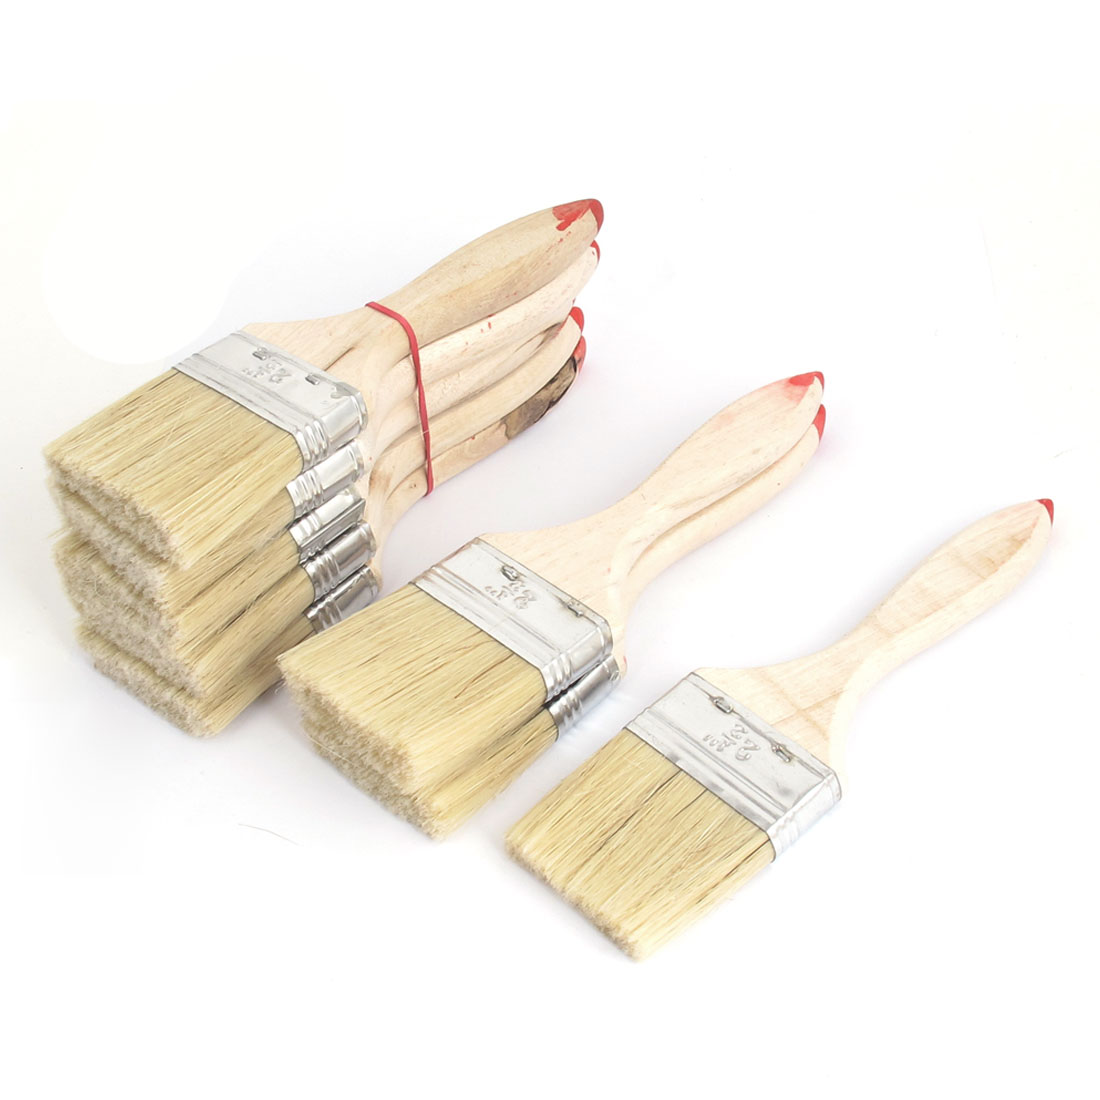 "Painter Wood Nonslip Handle Brushes Nylon Hair Paint Painting Background Blending Wall Brush 8 Pcs 2.5"" Width Beige"